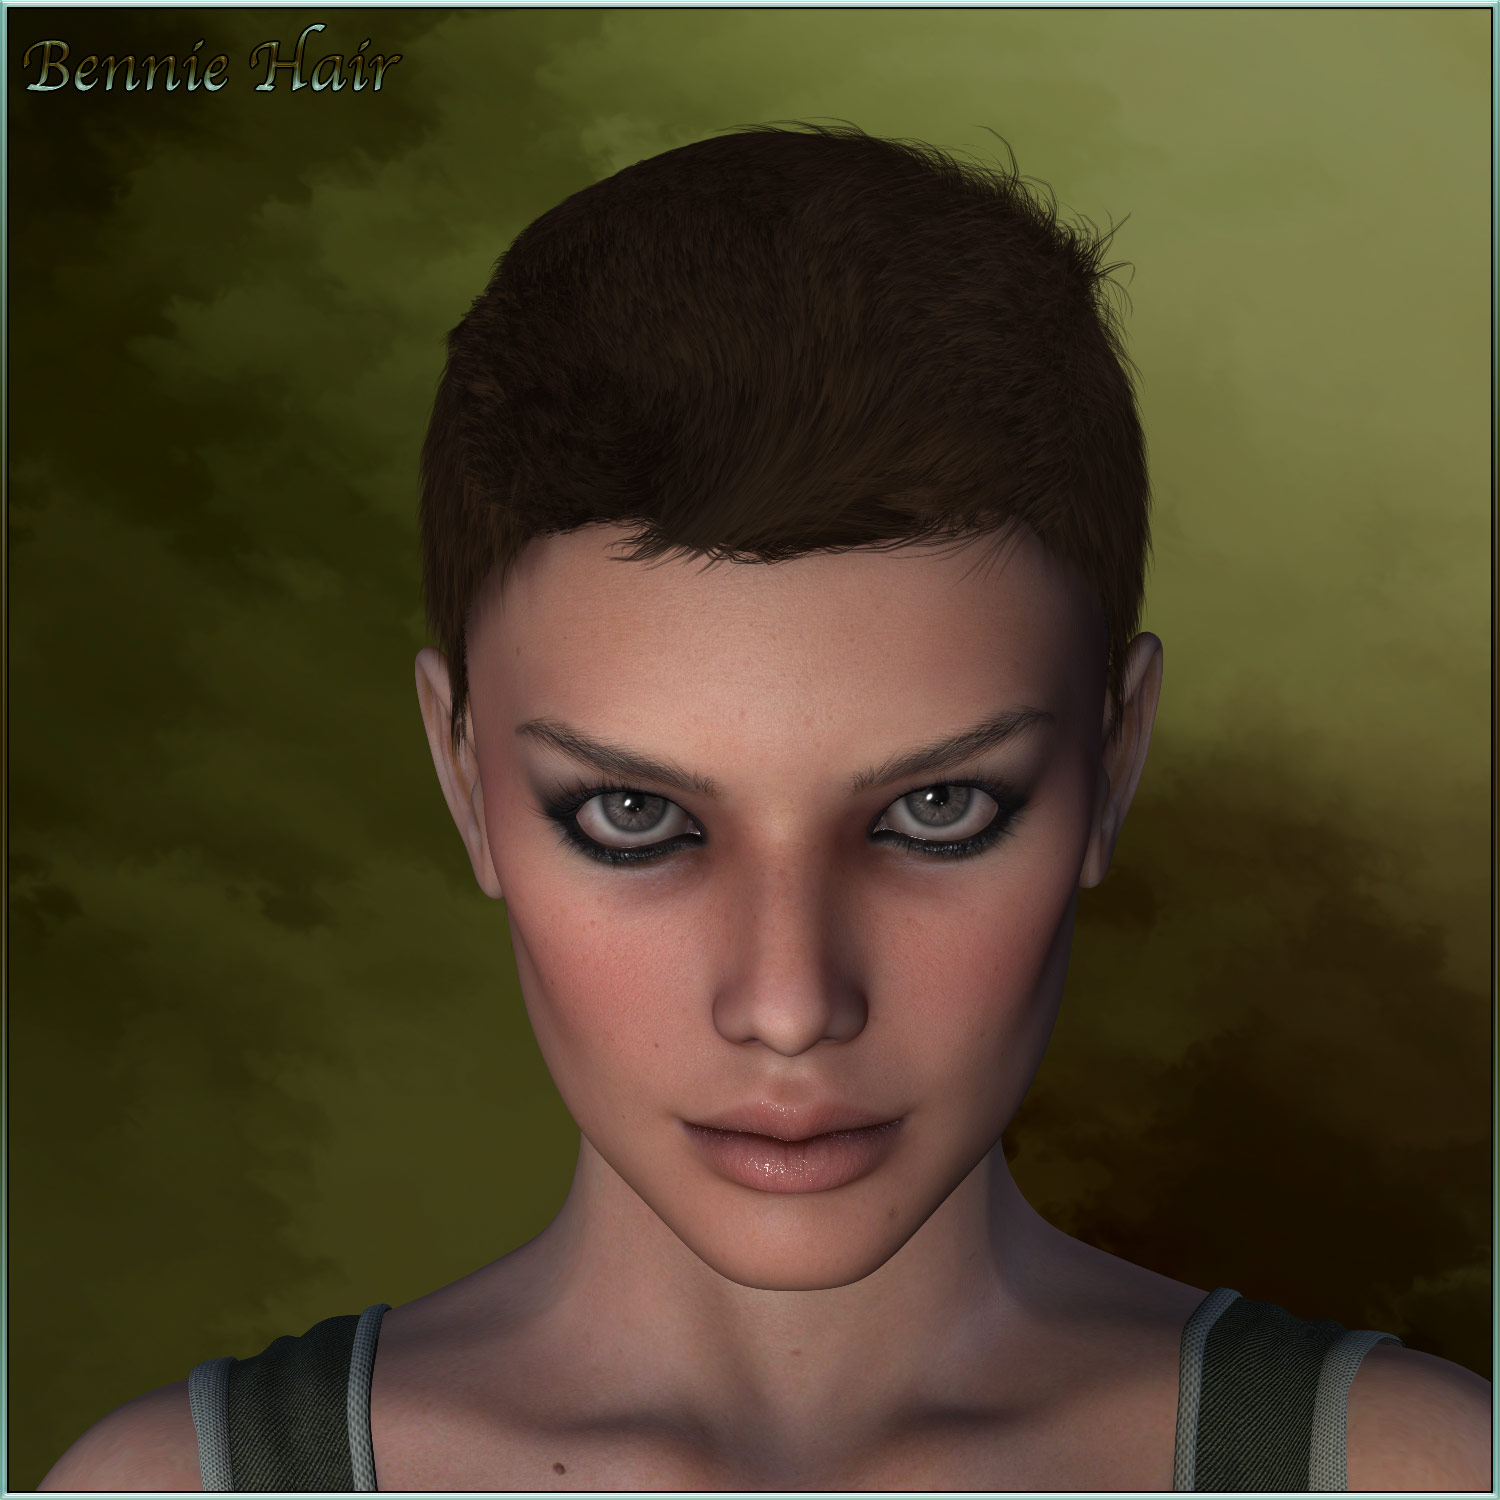 Bennie Hair for V4/M4 and La Femme - Poser